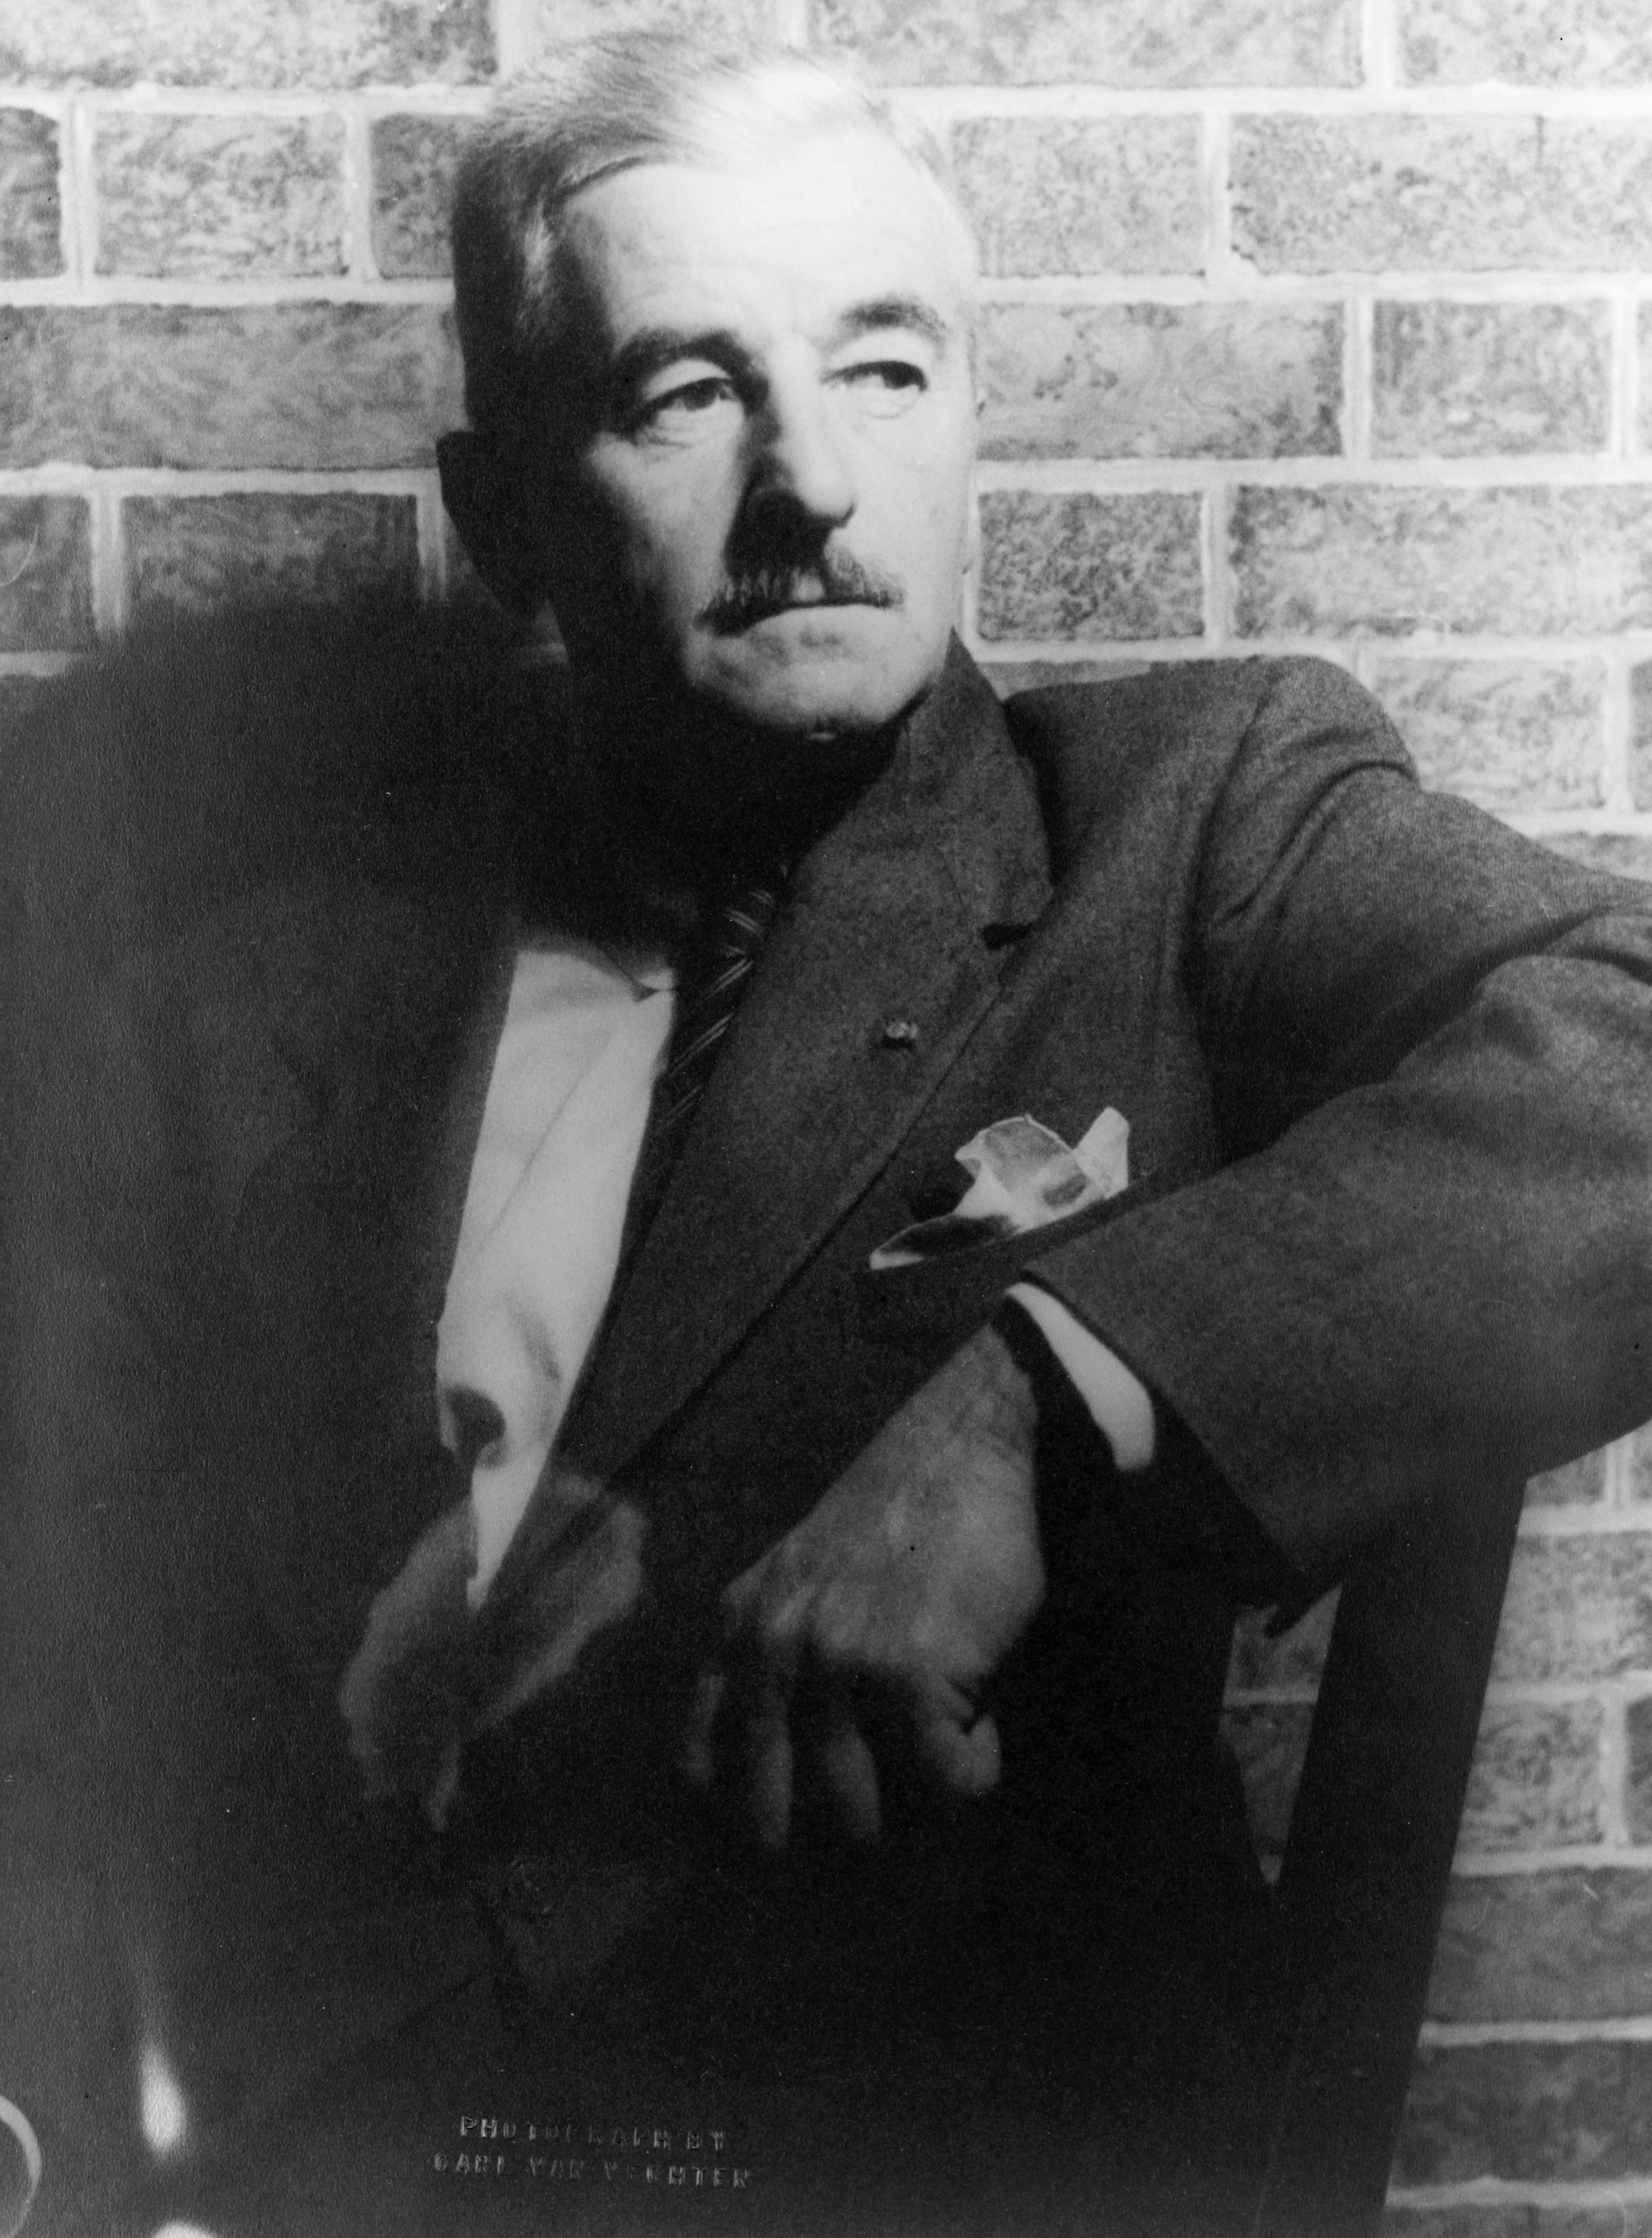 william_faulkner_1954_3_photo_by_carl_van_vechten